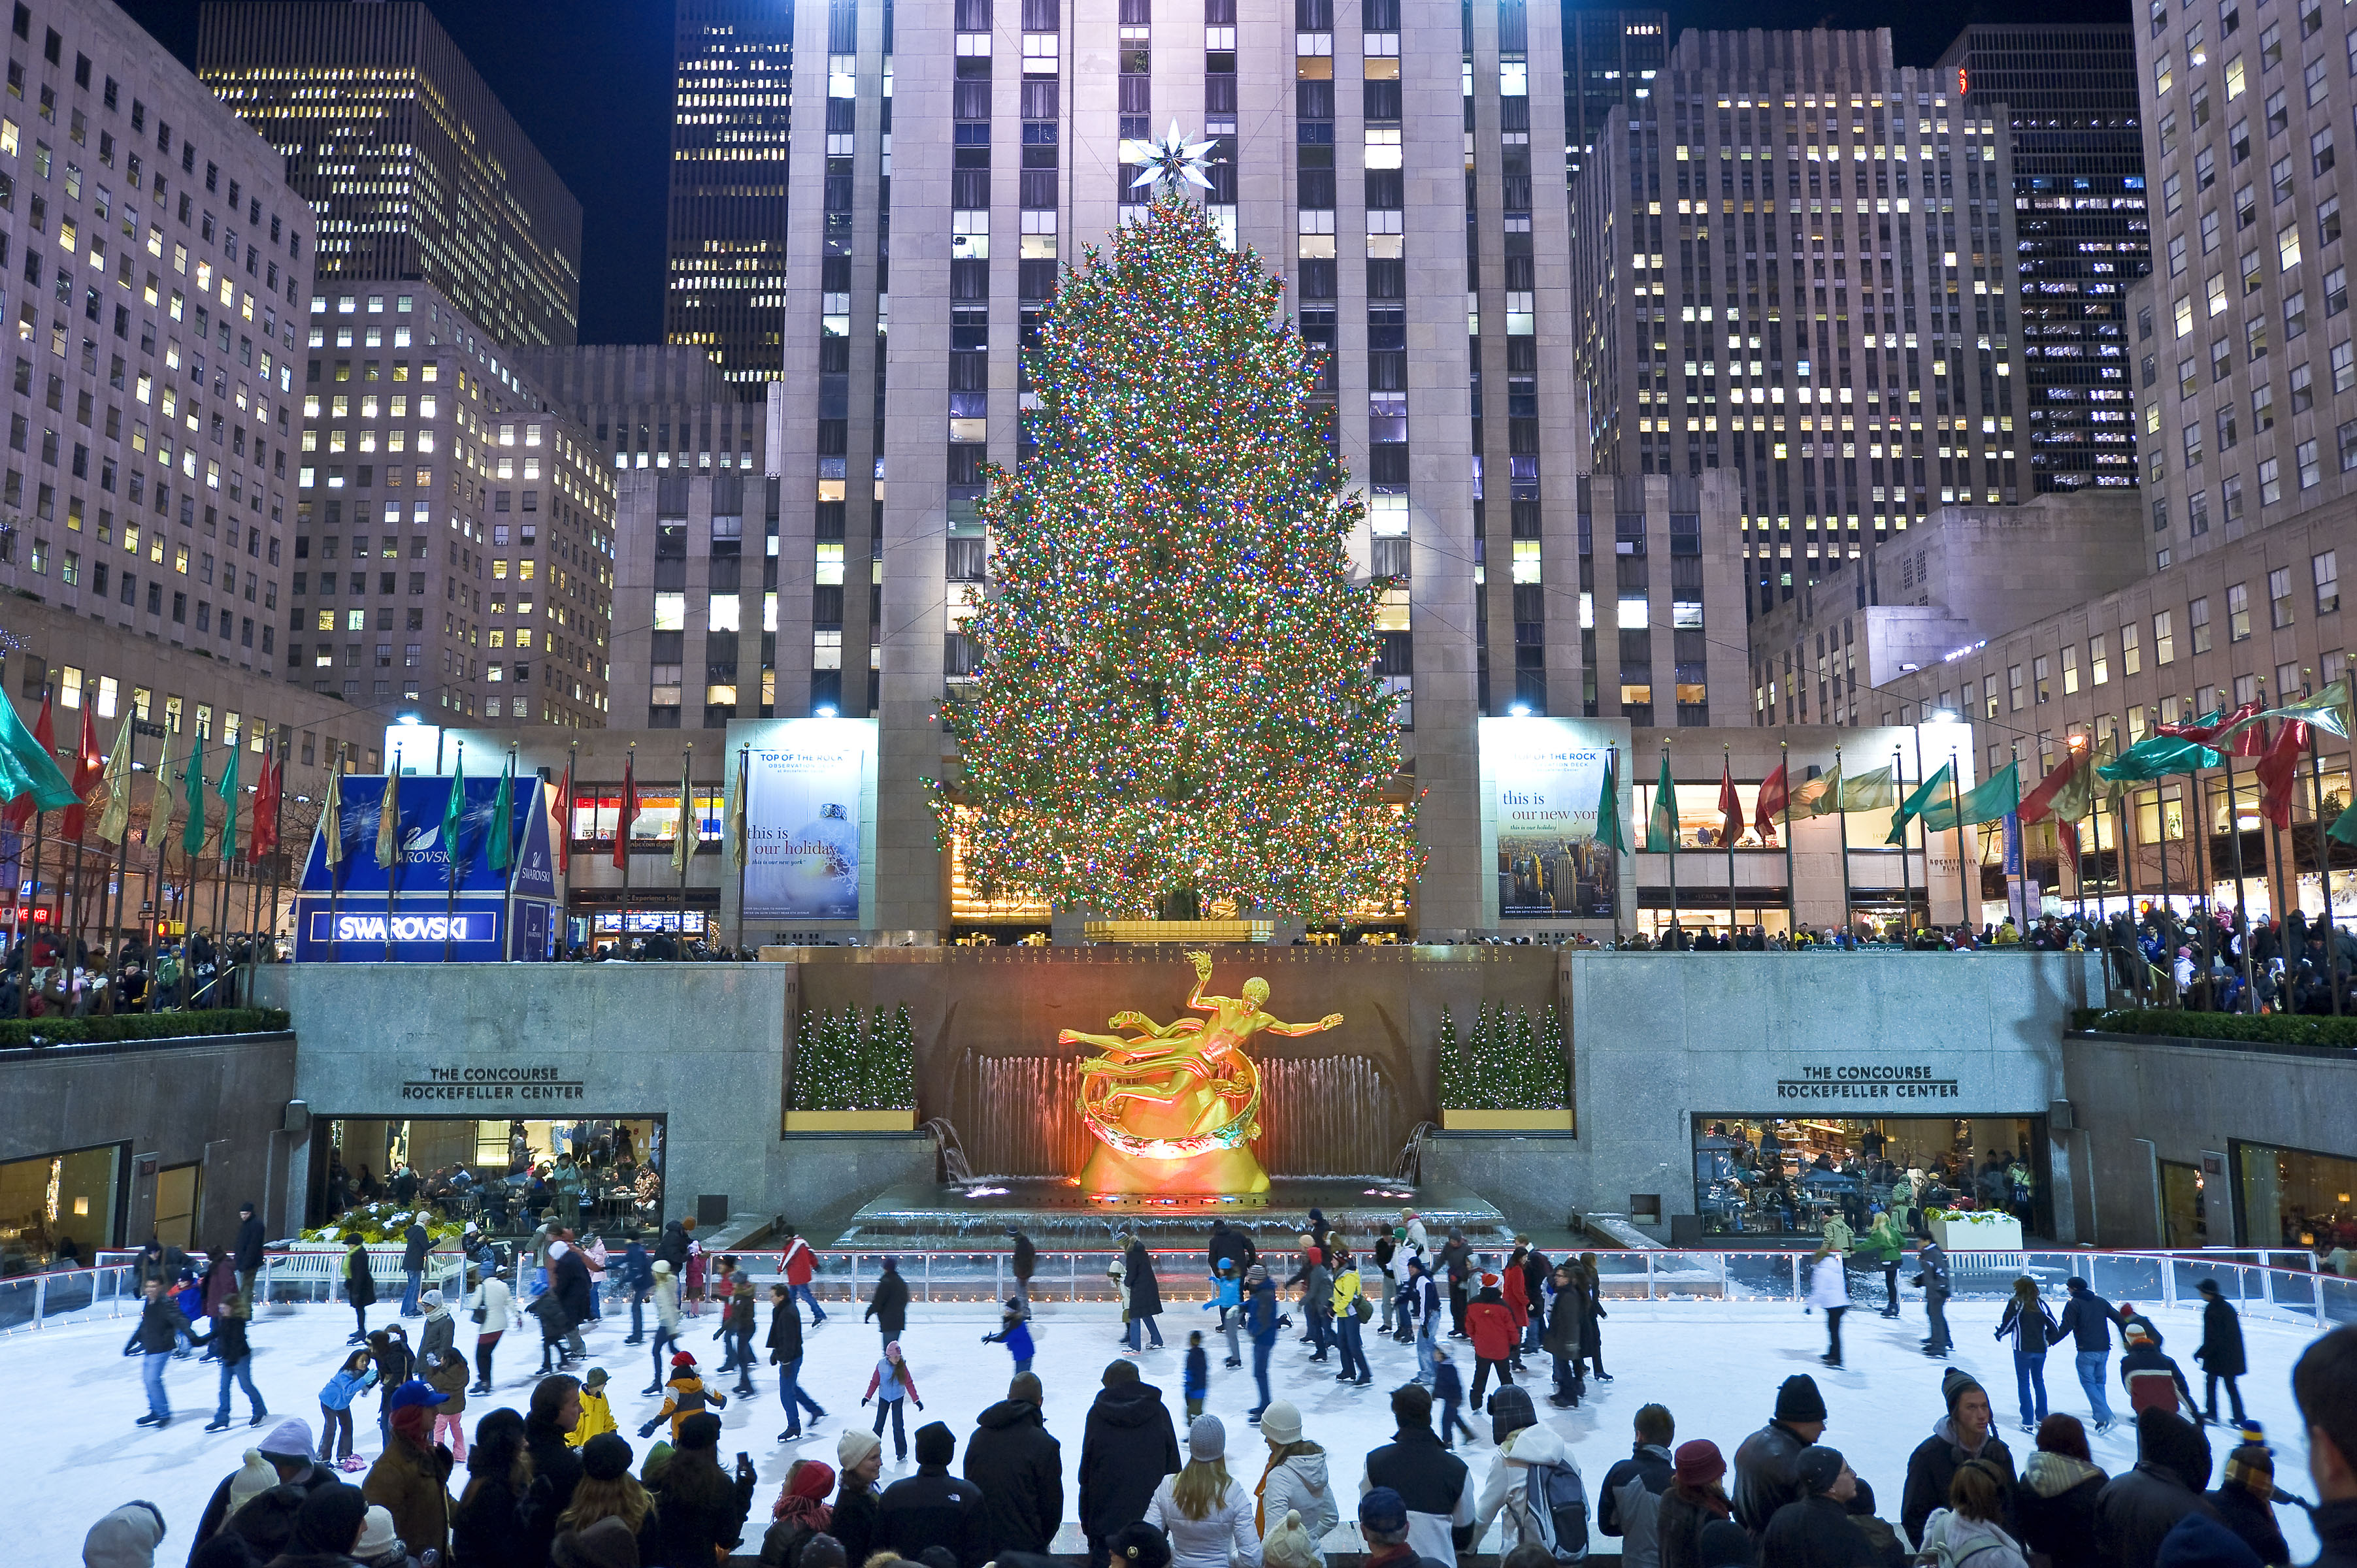 The 2008 Rockefeller Center Christmas Tree came from Hamilton, New Jersey. The '08 Tree was donated by the Varanyak family. Tree Facts from the 2008 Tree Facts Postcard (photo by Bart Barlow): Norway Spruce. 72 feet tall, 40 feet wide. Approximately 82 years old. Weight- approximately 16,000 pounds. 30,000 LED lights. (This was the second year that LED bulbs were used on the Tree). A portion of the electrical energy used to light the Tree came from a new installation of photovoltaic panels installed in 2007 on the roof of 45 Rockefeller Plaza. The Tree was topped with a crystal star designed by Swarovski. The 550 pound star is 9 feet in diameter and 1.5 feet deep. It is decorated with 25,000 crystals, with one million facets. The Tree was lighted on December 3, 2008. The Tree's last day on Rockefeller Plaza was January 9, 2009.